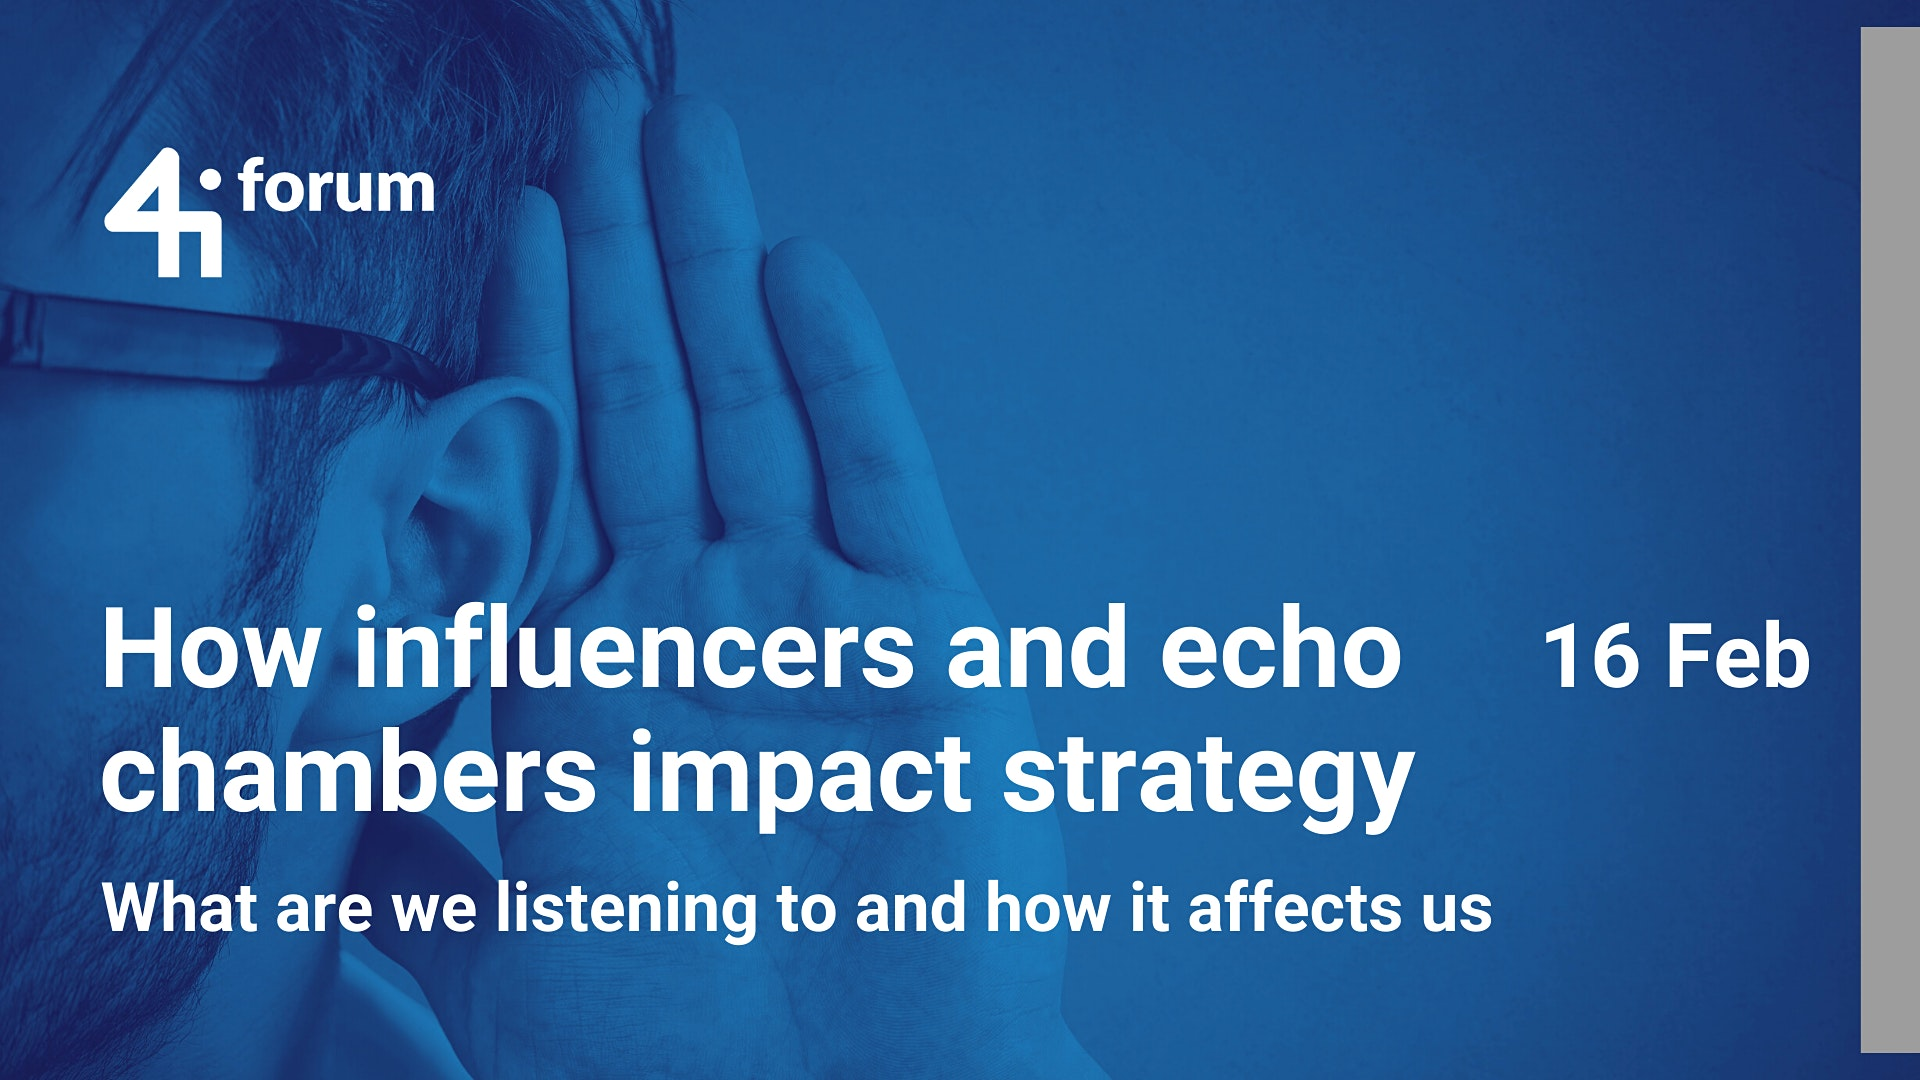 4iforum: How influencers and echo chambers impact your strategy